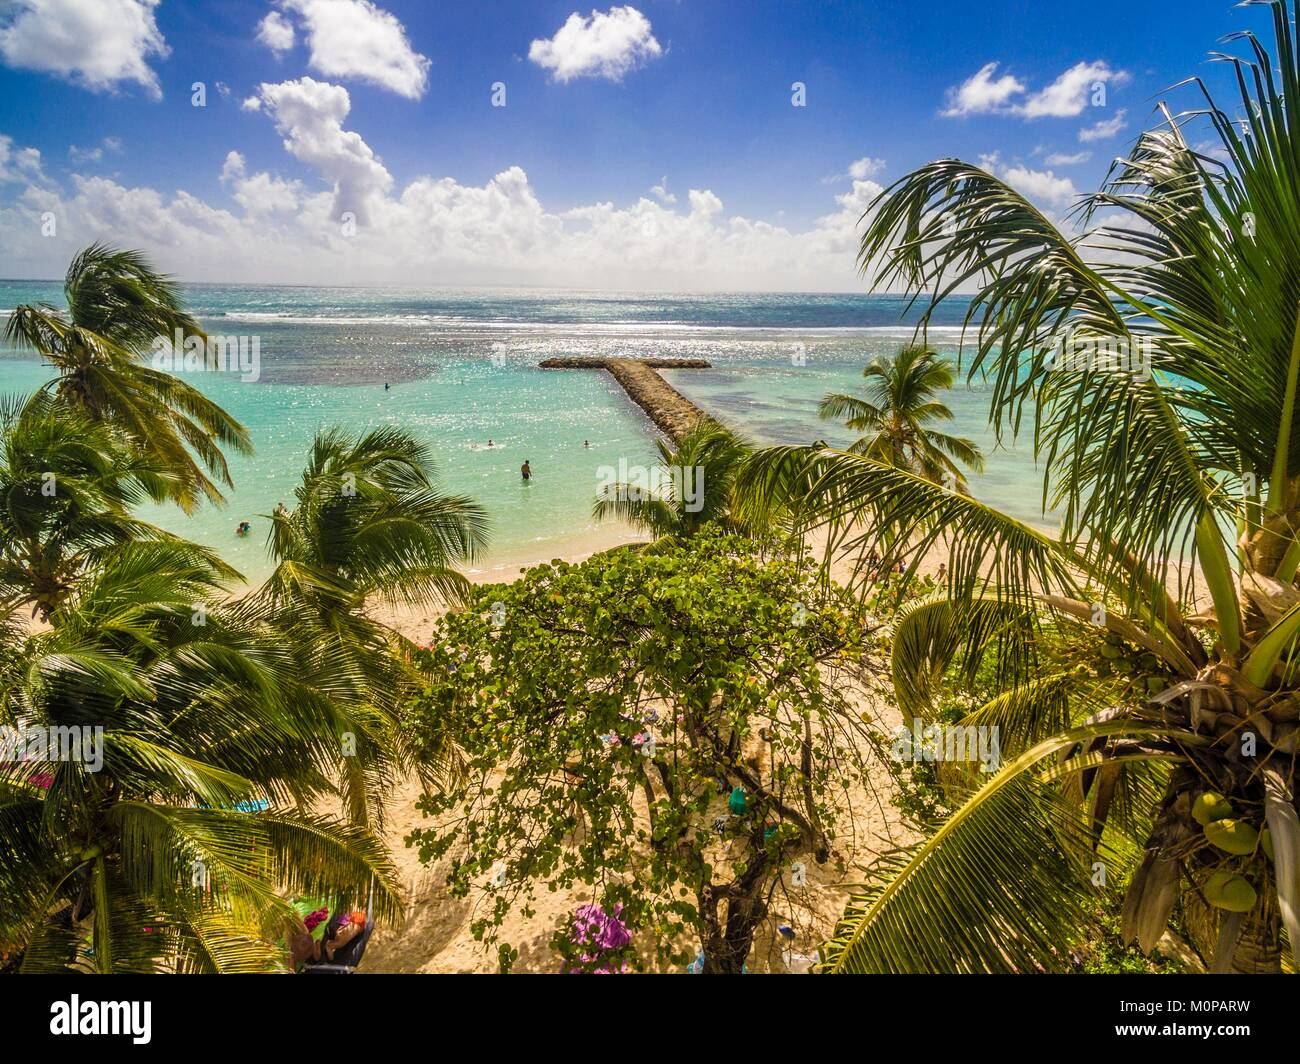 France,Caribbean,Lesser Antilles,Guadeloupe,Grande-Terre,Sainte Anne,aerial view of the municipal beach and its - Stock Image